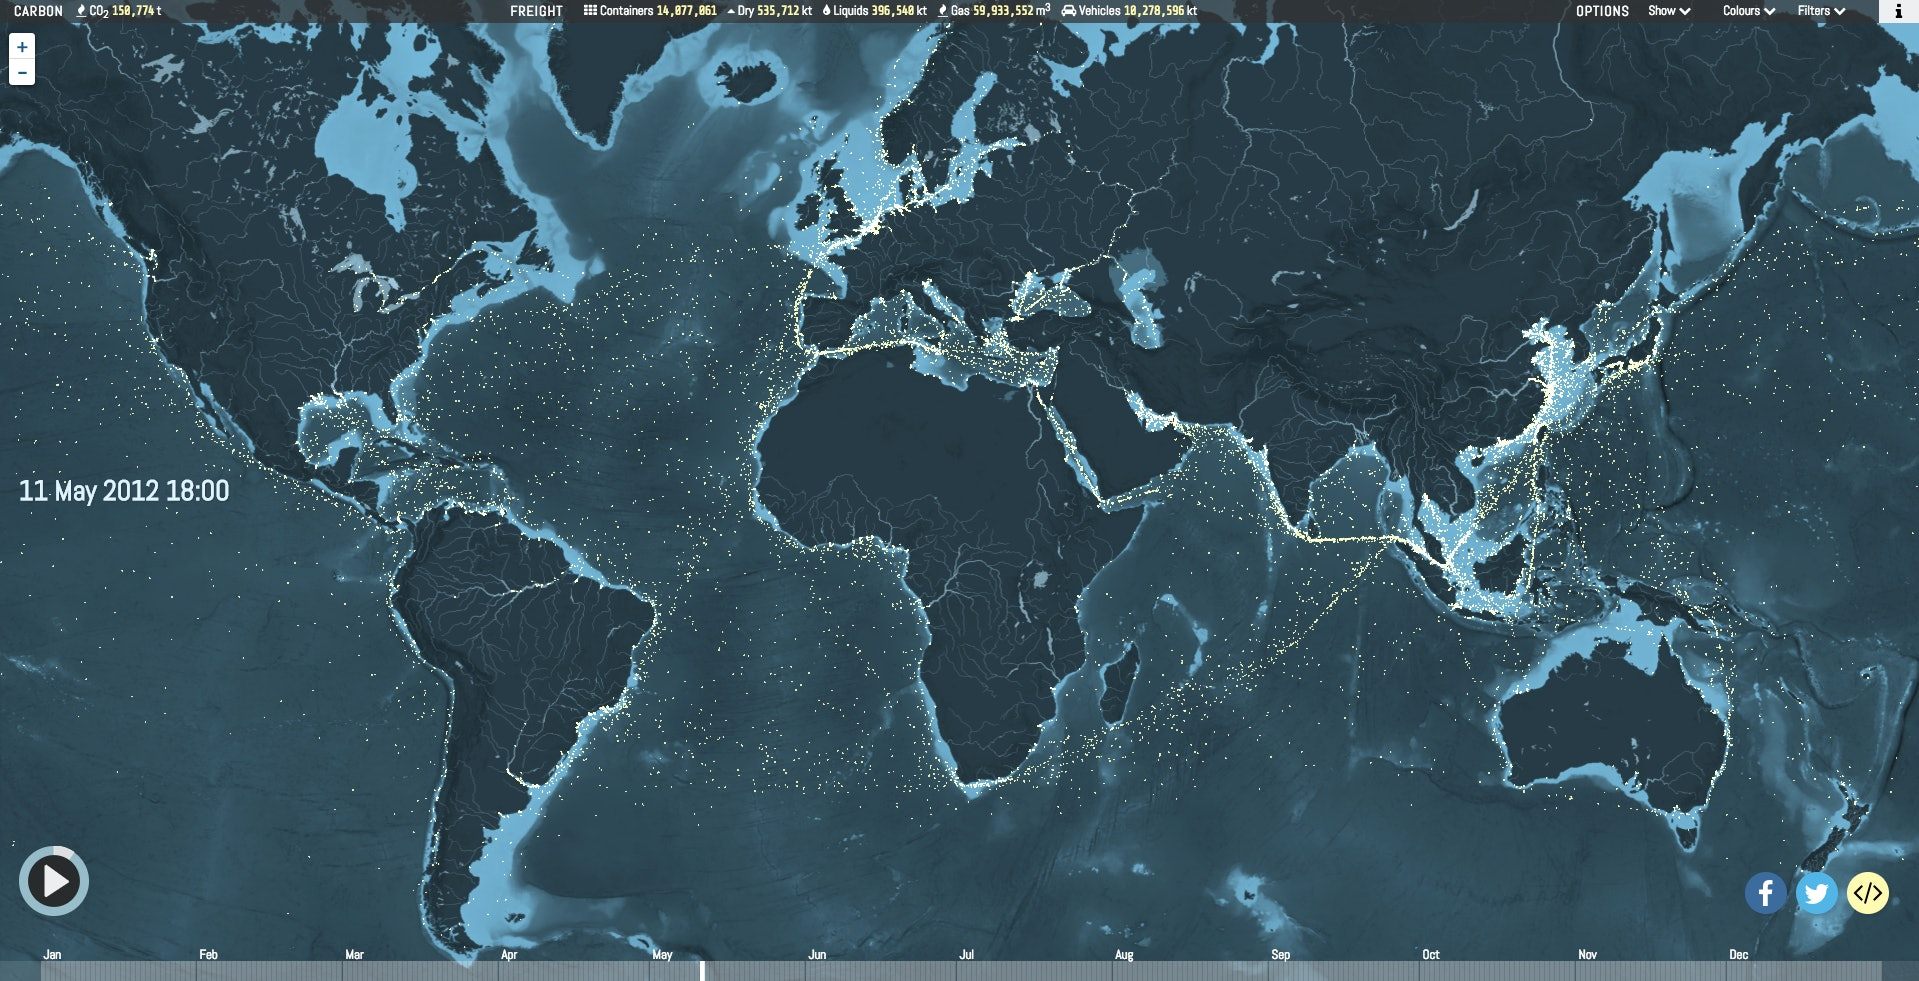 ShipMap.org maps out cargo ships as they move across the world throughout the year.